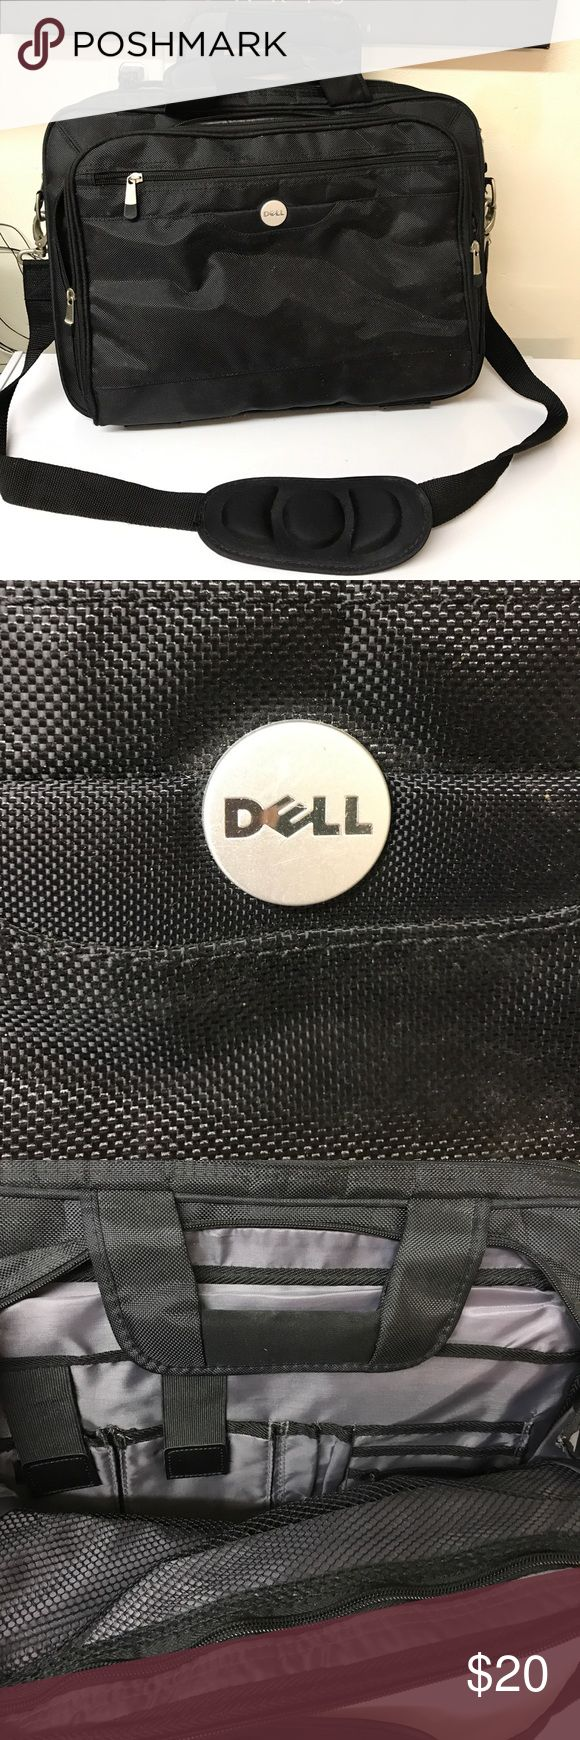 New DELL laptop handbag Dell laptop large bag new never used lots of pockets for organization 18x13 great condition no damage adjustable shoulder strap dell Bags Laptop Bags